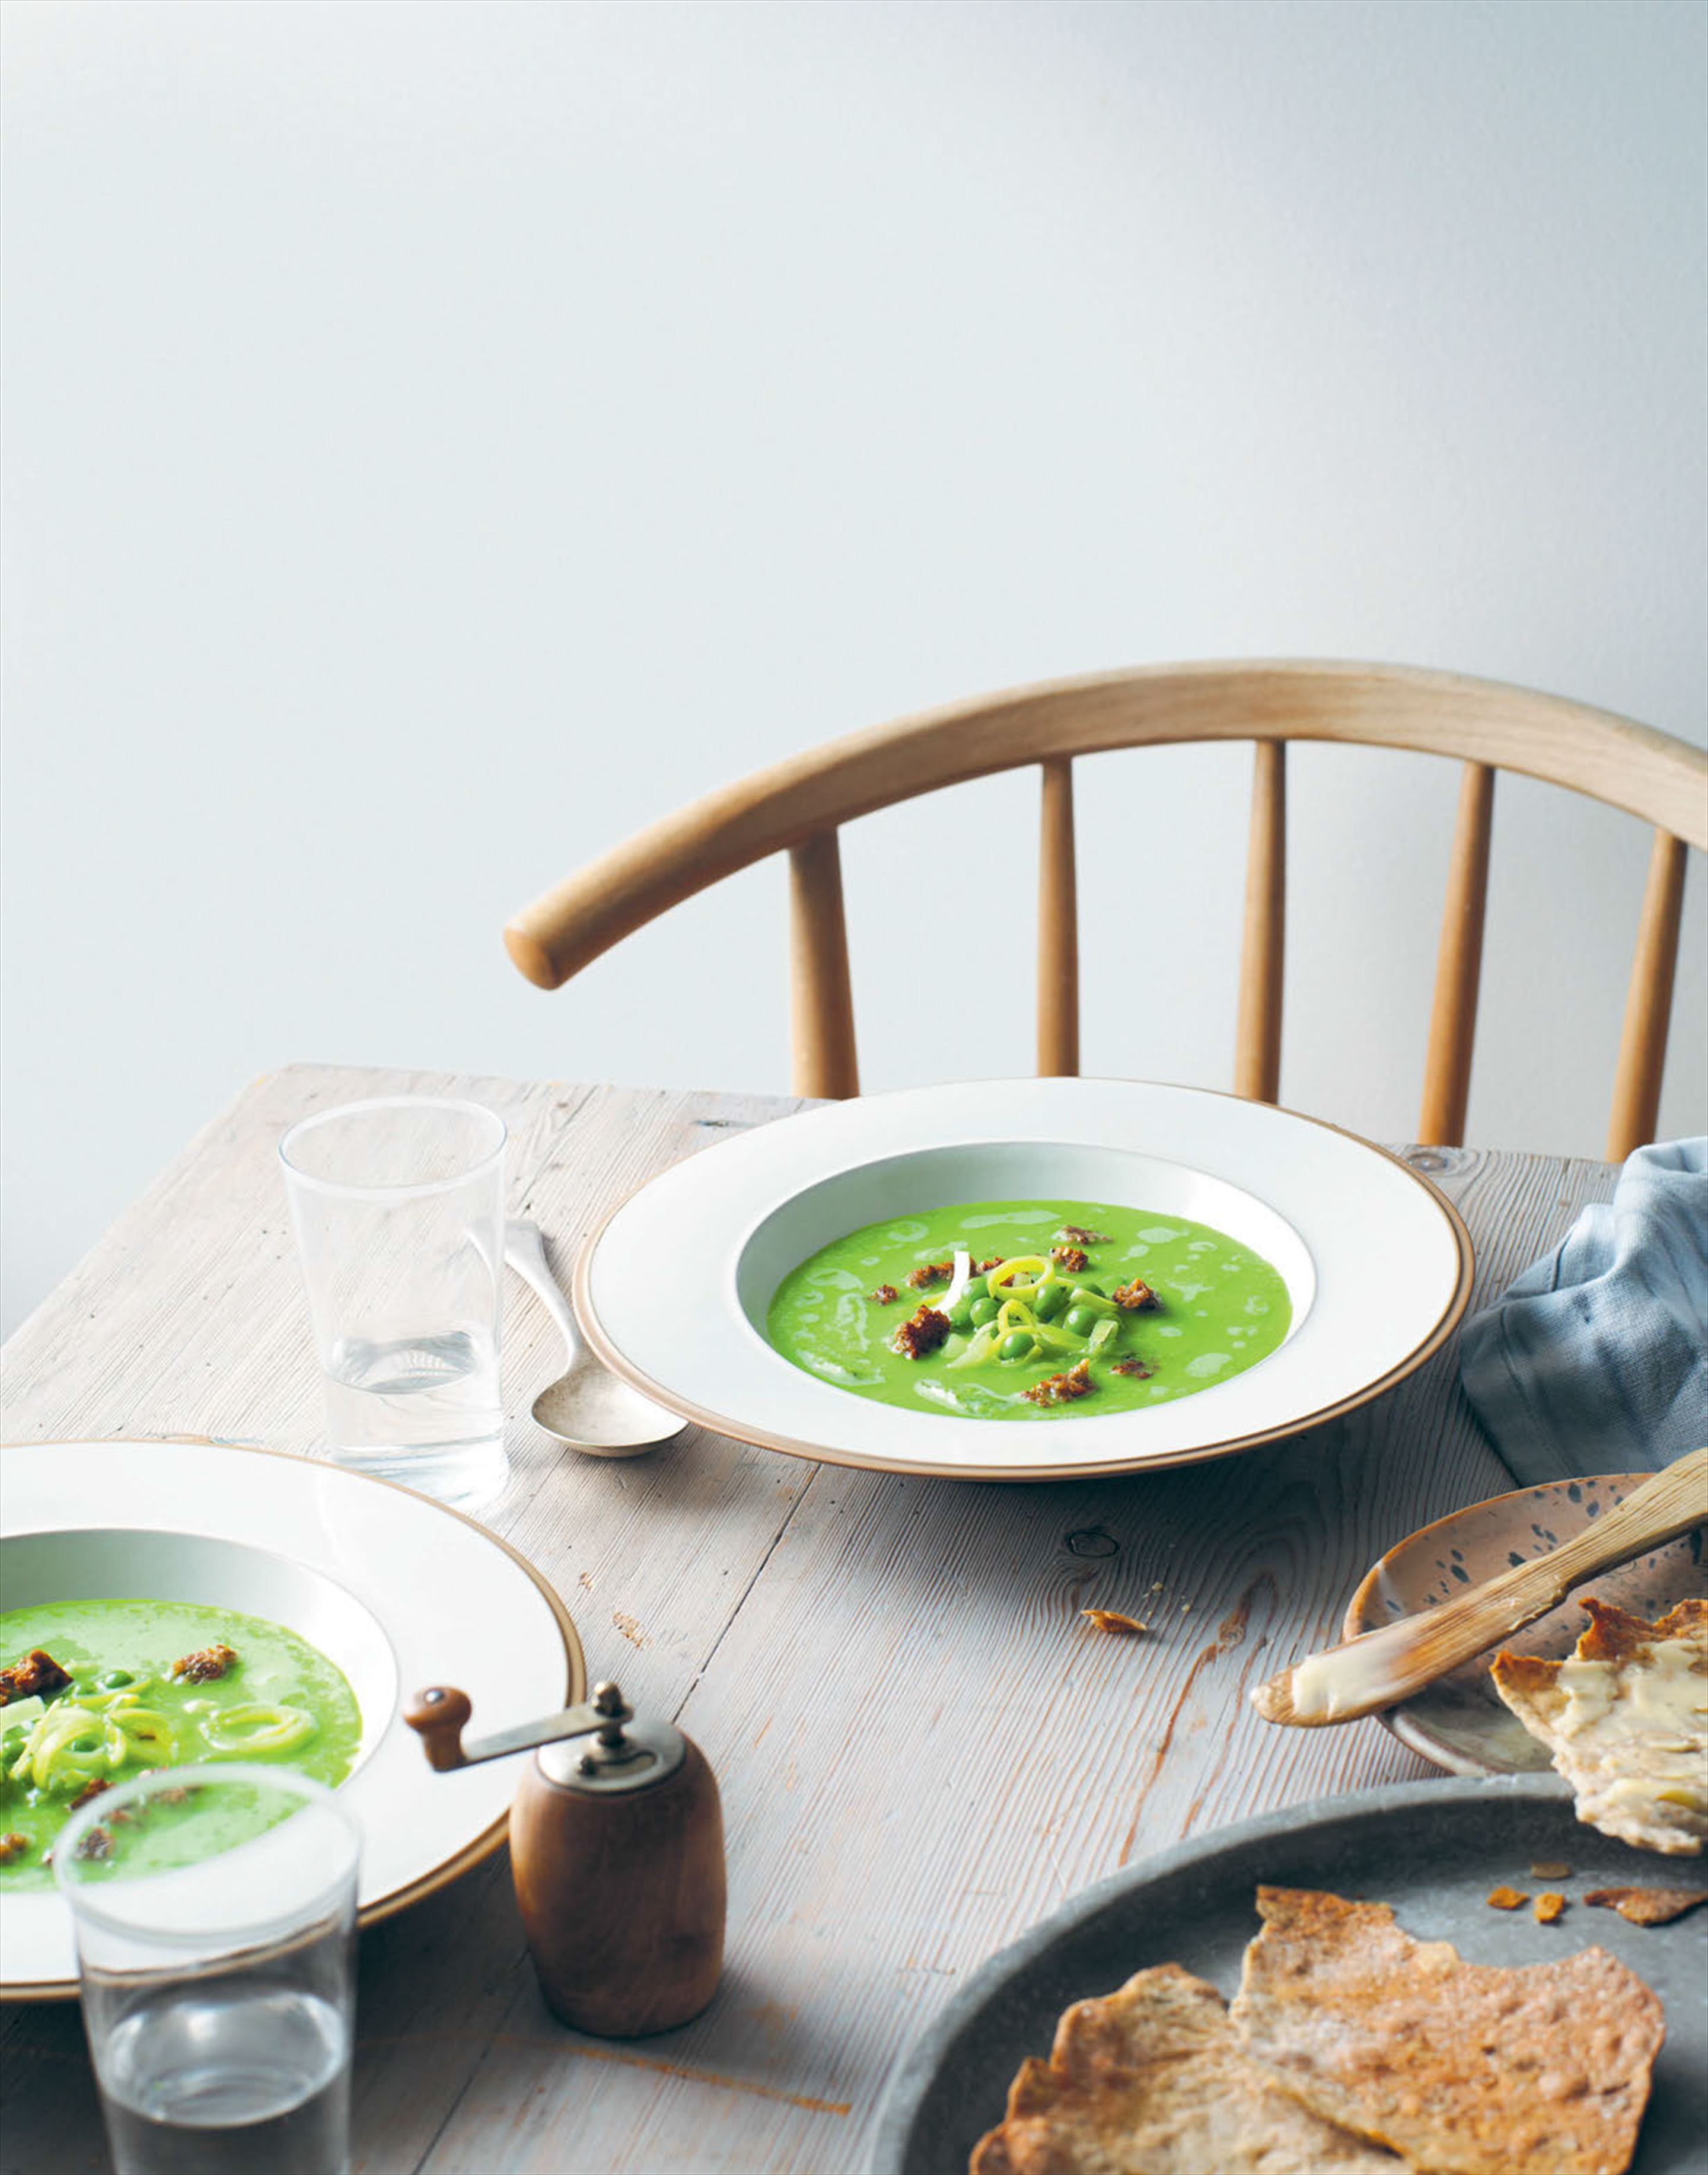 Chilled pea & dill soup with rye